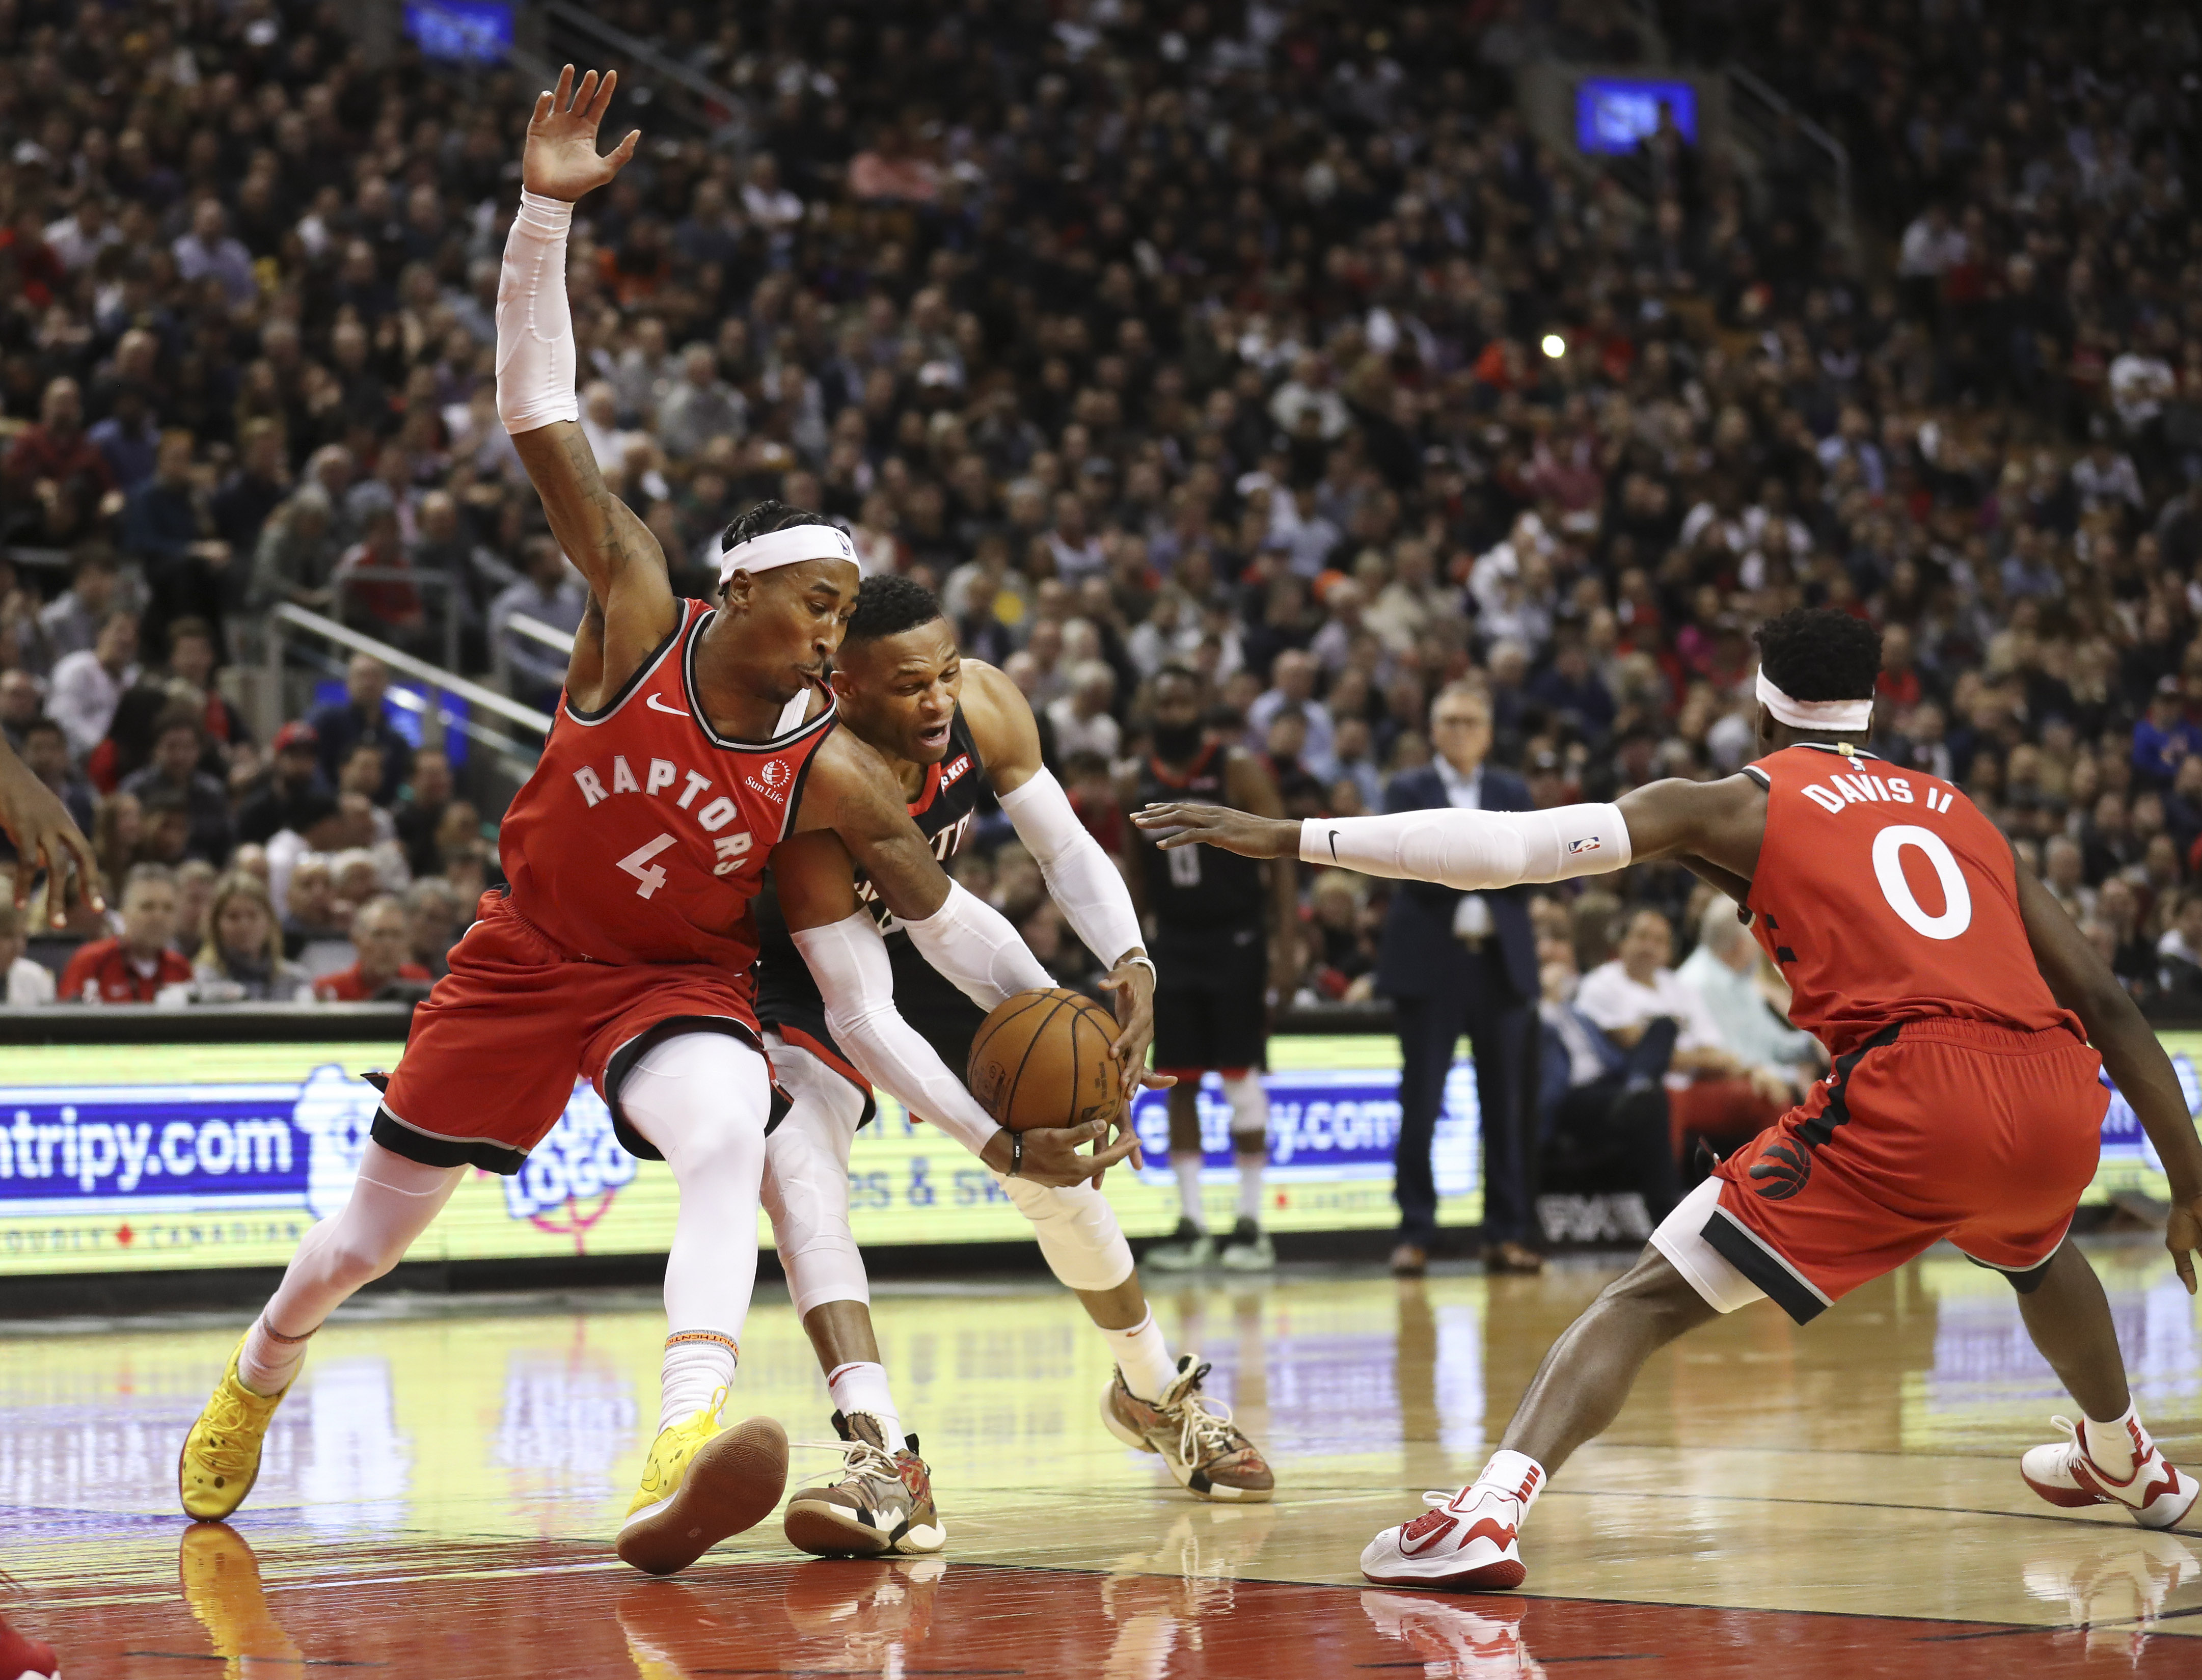 The Toronto Raptors took on the Houton Rockets at the Scotiabank arena.